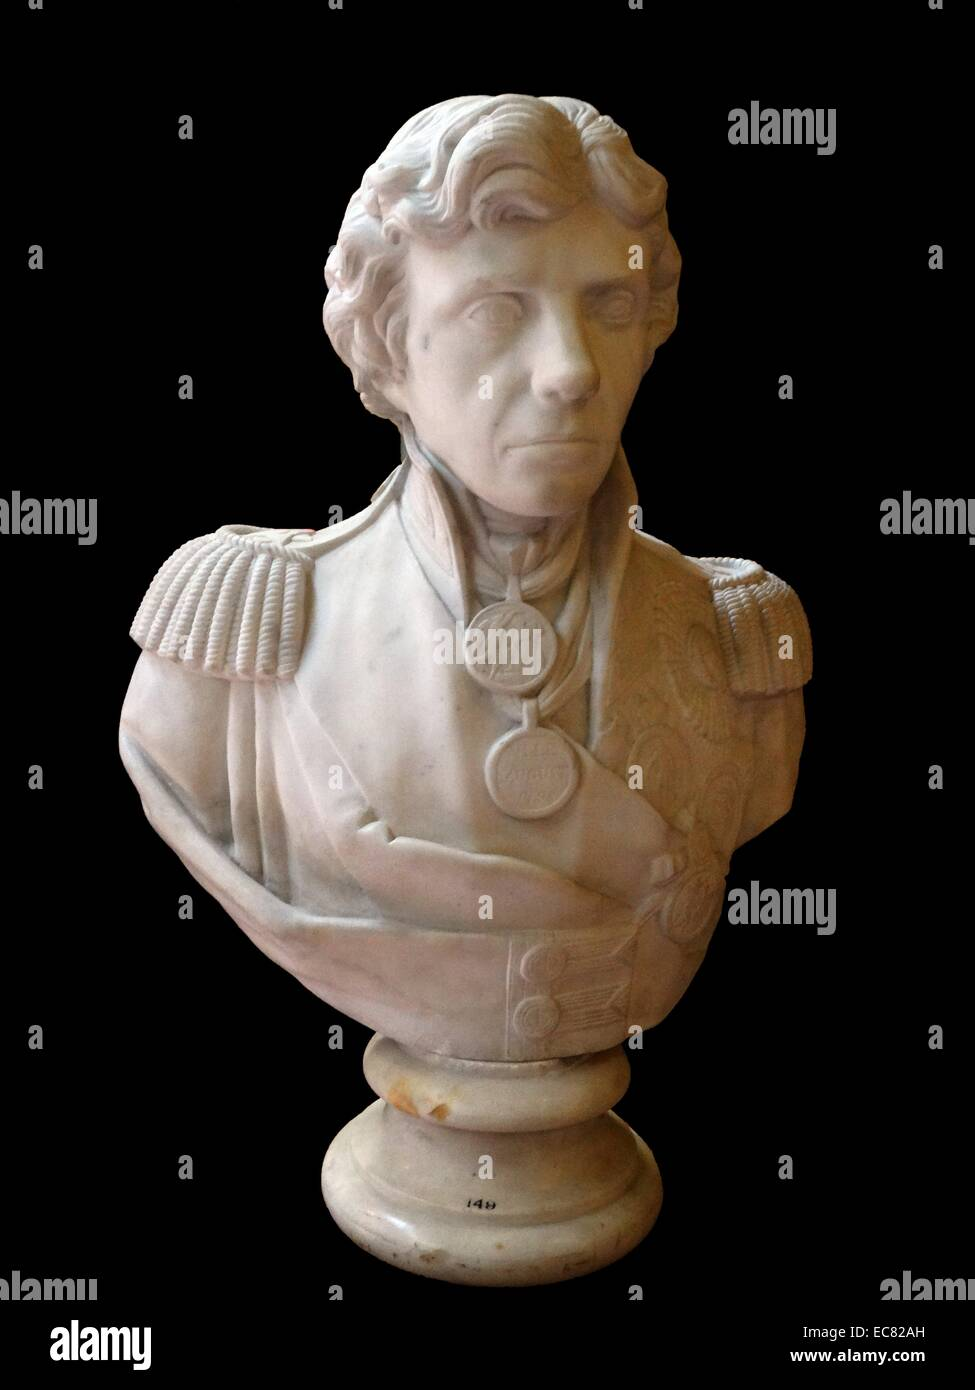 Lord Nelson; marble bust 1799 - Stock Image